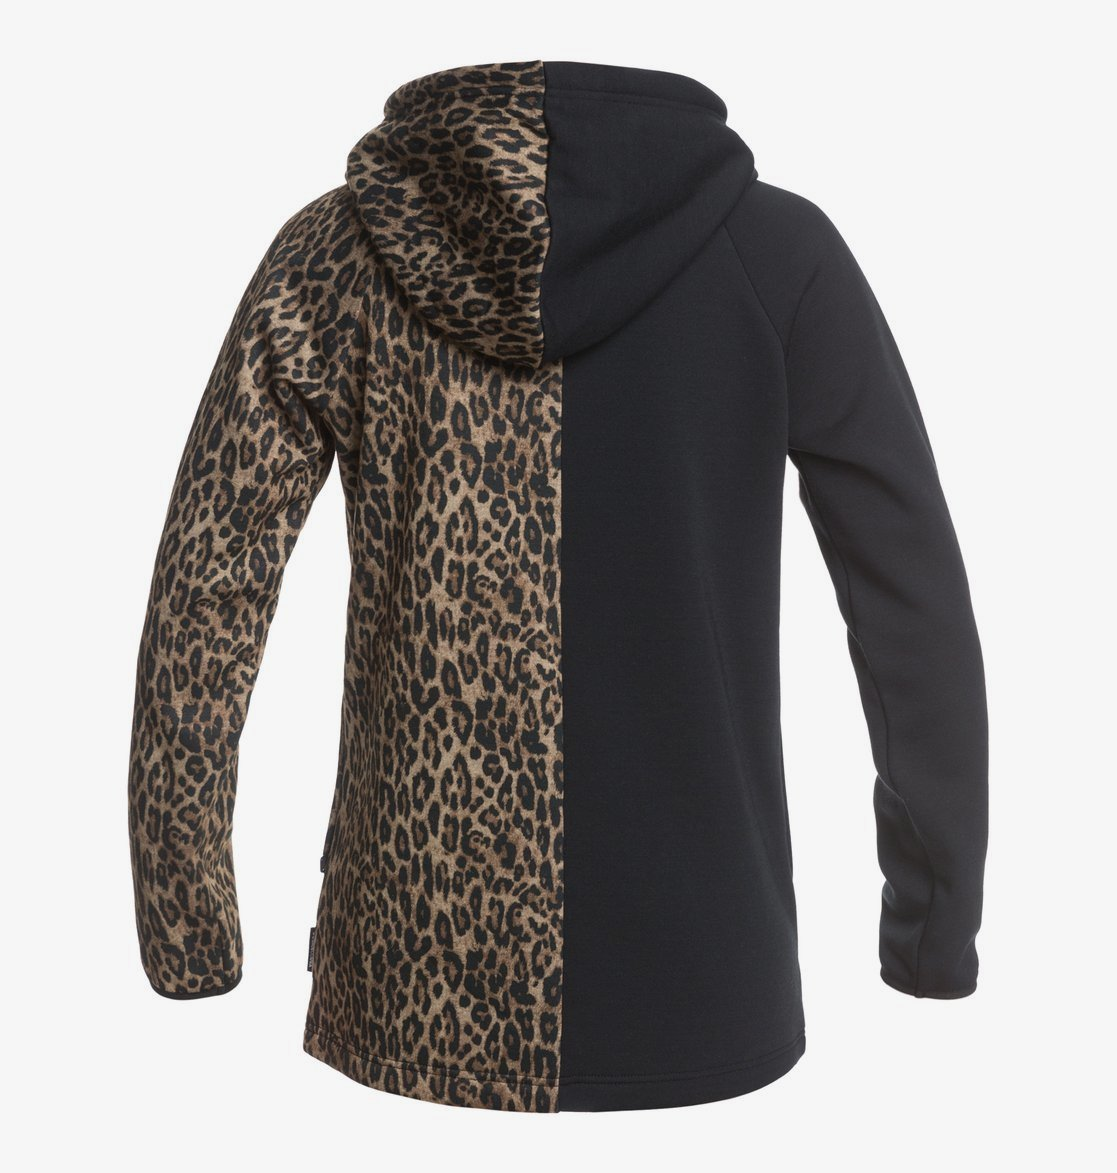 ДЖЕМПЕР SALEM FLEECE J OTLR CQZ6 Черный